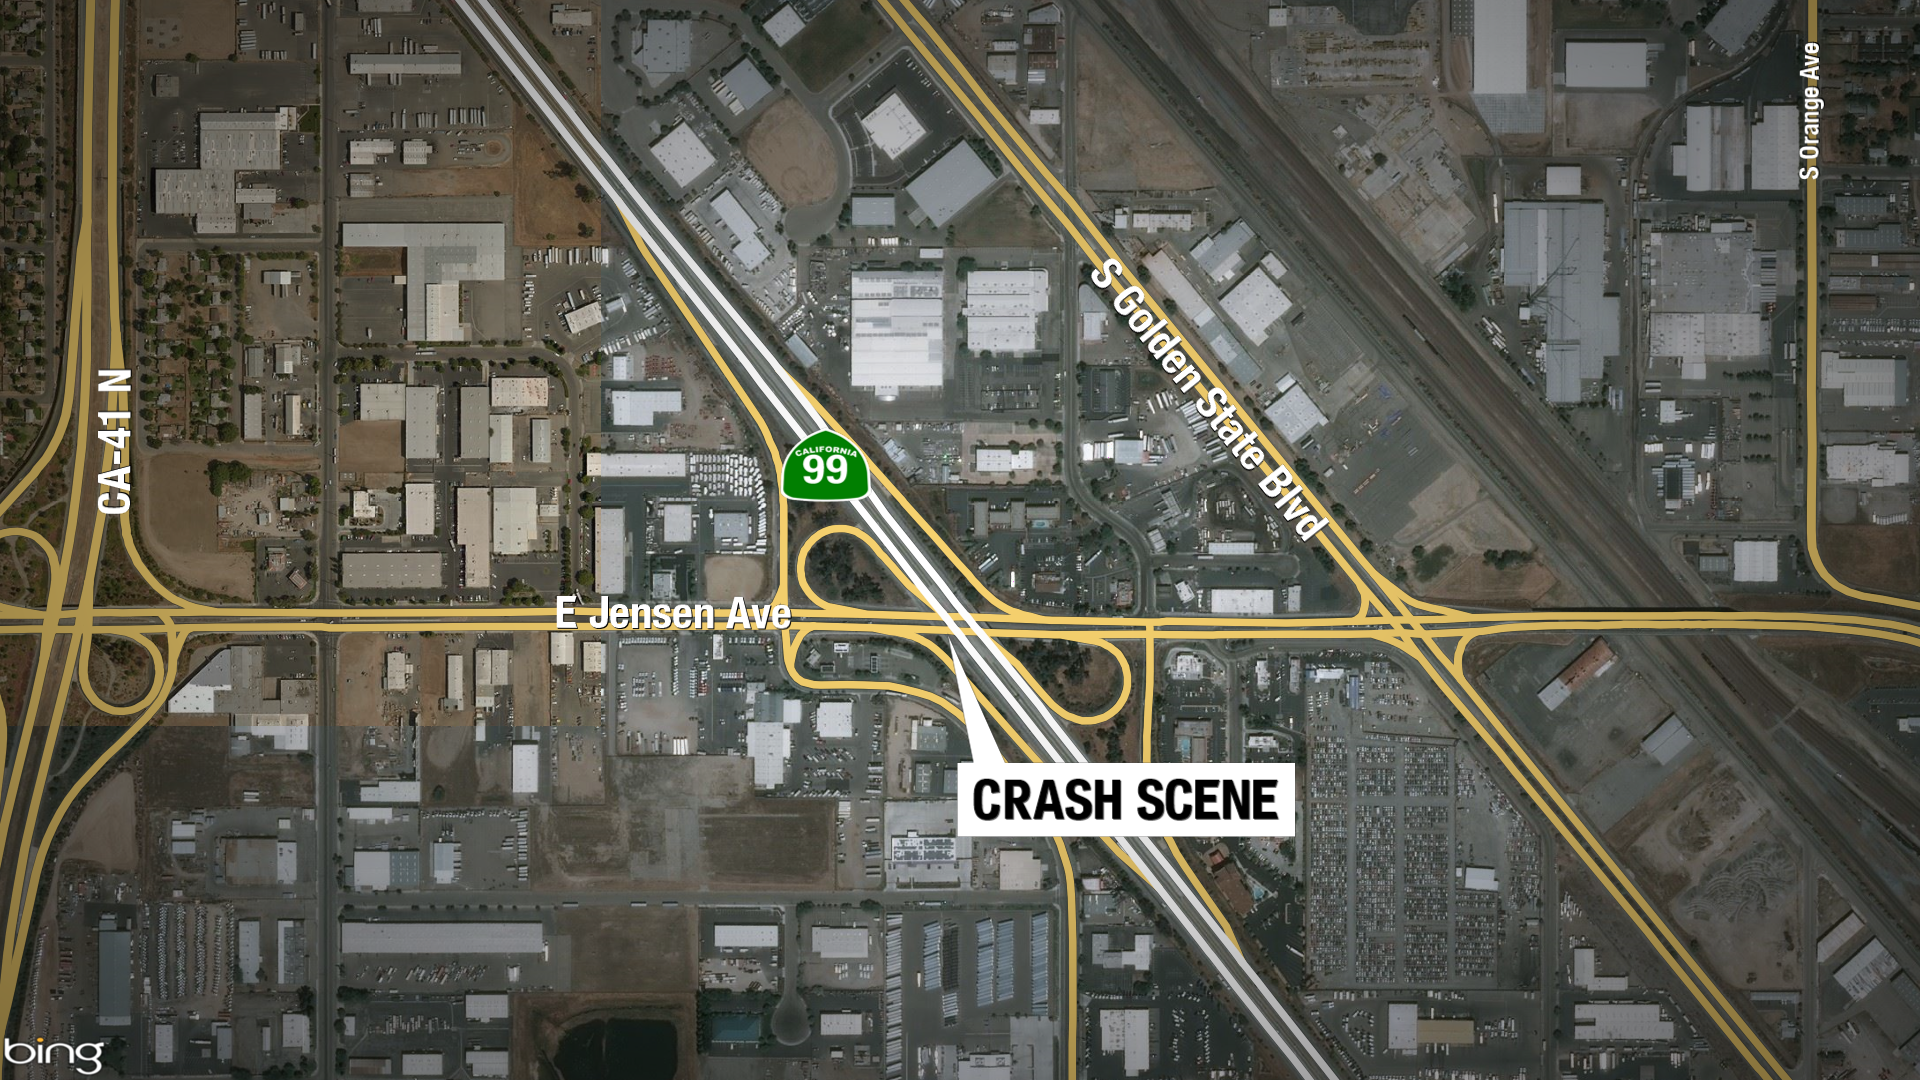 Accident Closes portion of 99